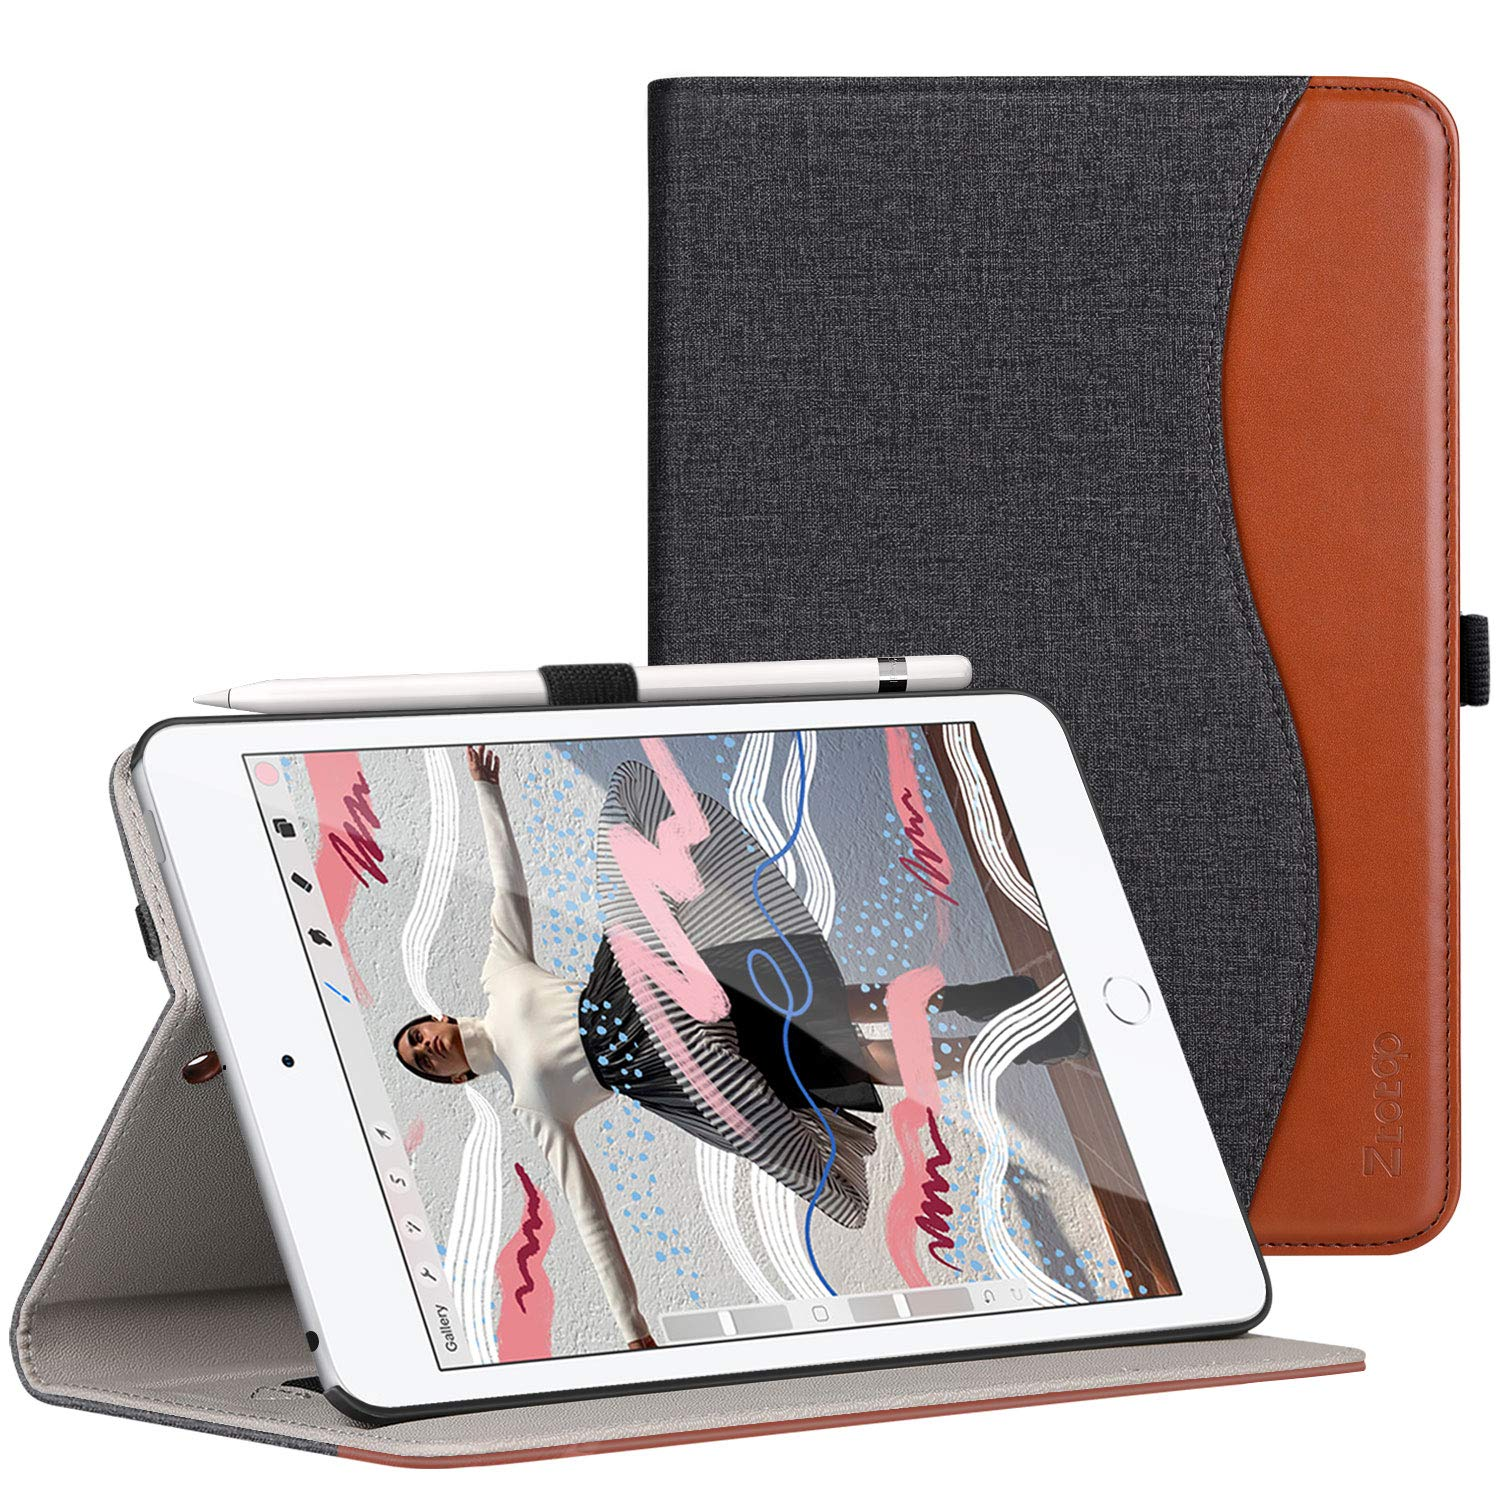 Ztotop for iPad Mini 5 Case, Leather Folio Stand Protective Case Smart Cover with Multi-Angle Viewing, Paperwork Card Pocket, Functional Elastic Strap for iPad Mini 5th Gen 2019 - Dual Color